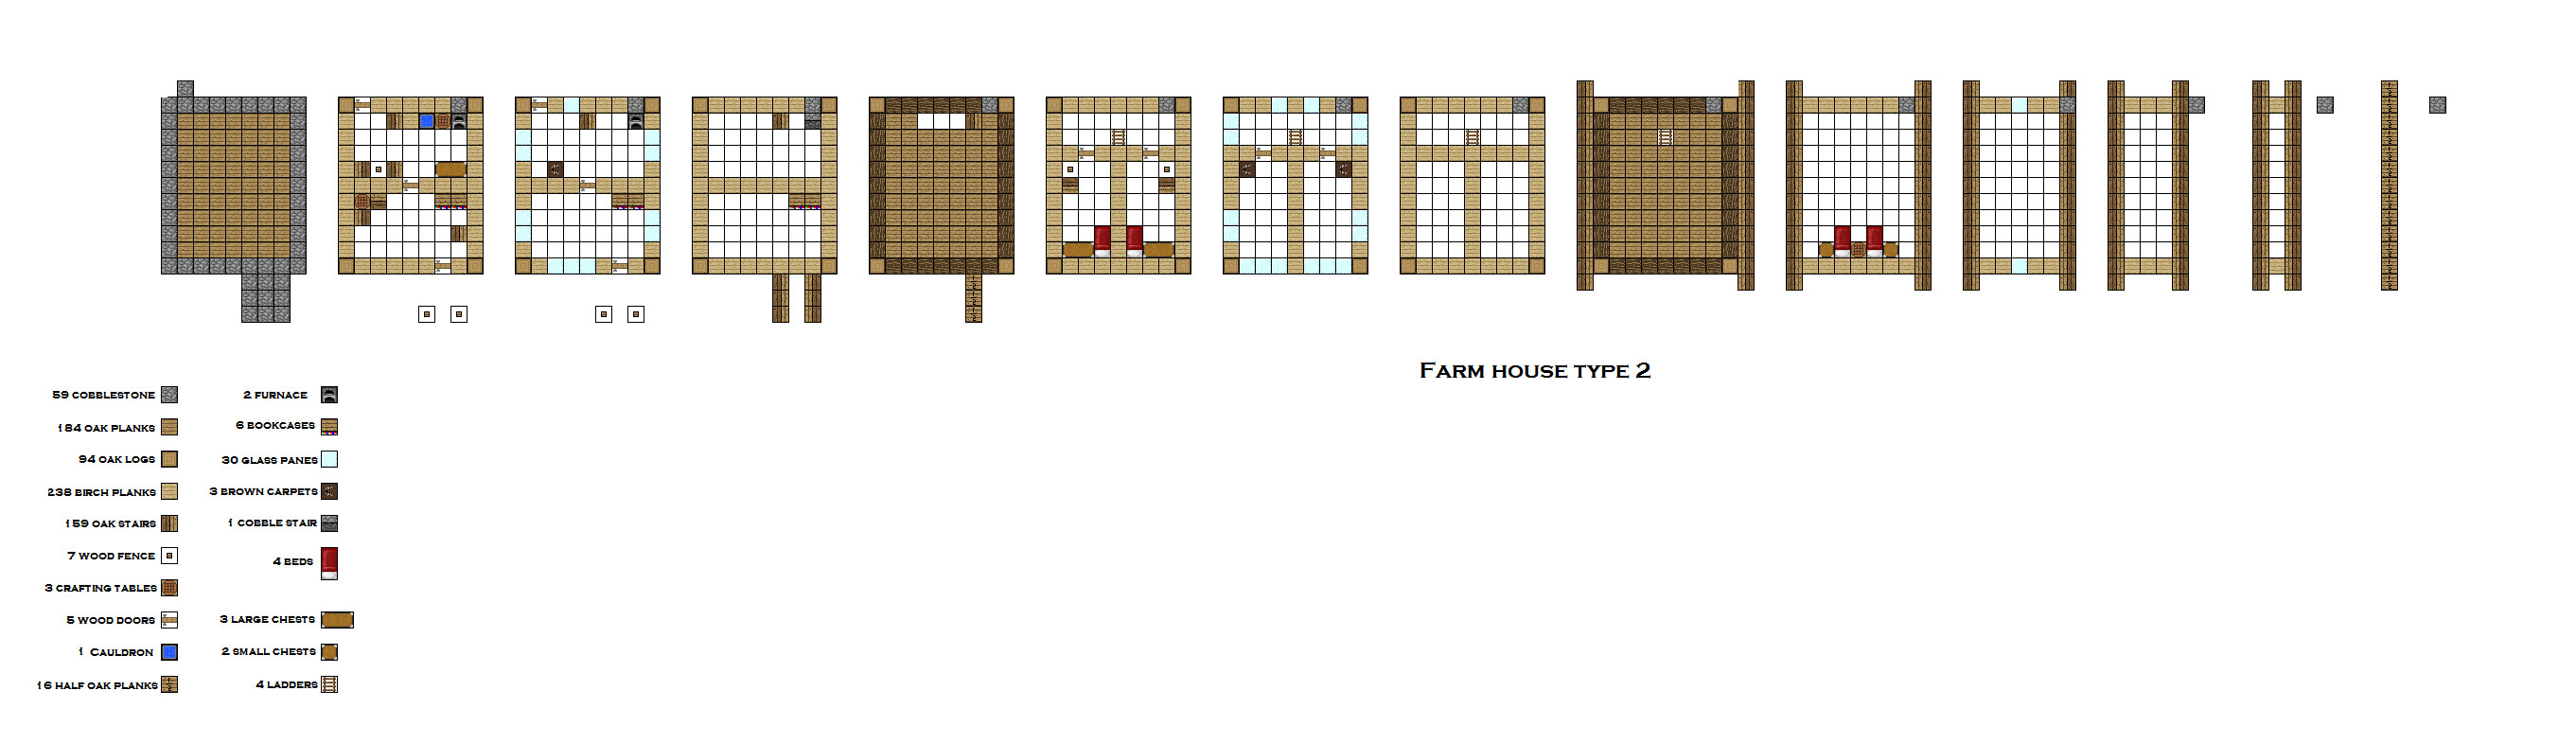 Minecraft House Blueprints Layer By Layer Mk 2 Farmhouse For 64 X 64 Farm By Coltcoyote On Deviantart